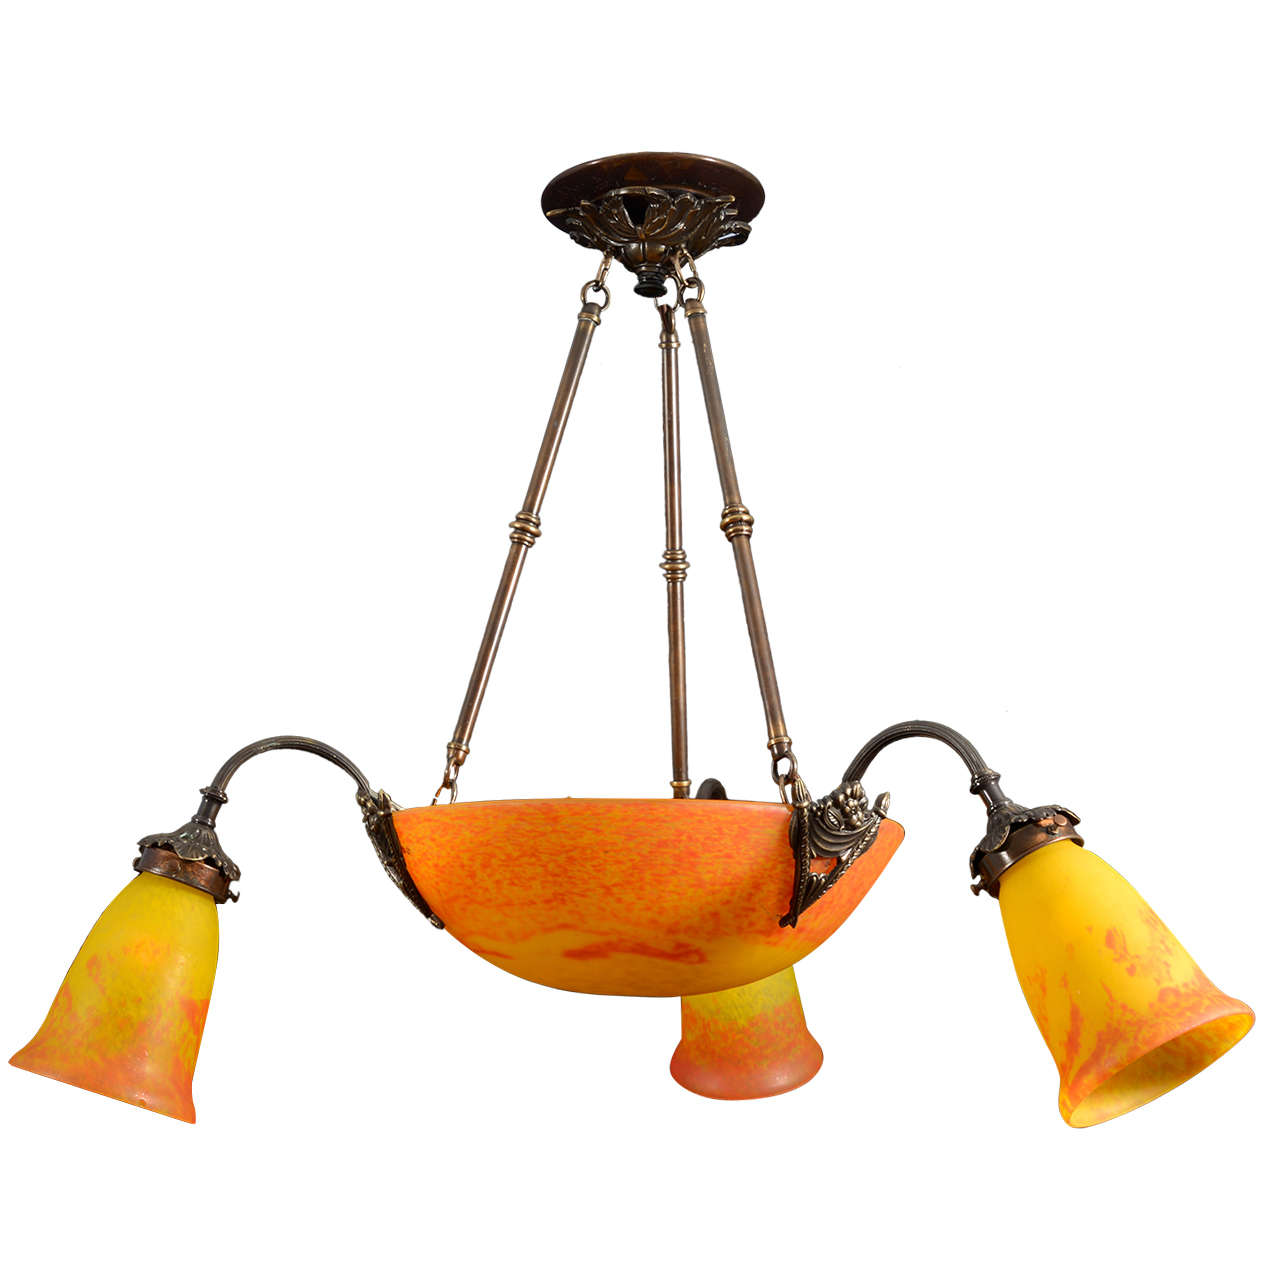 Art Deco Chandelier by Muller Freres